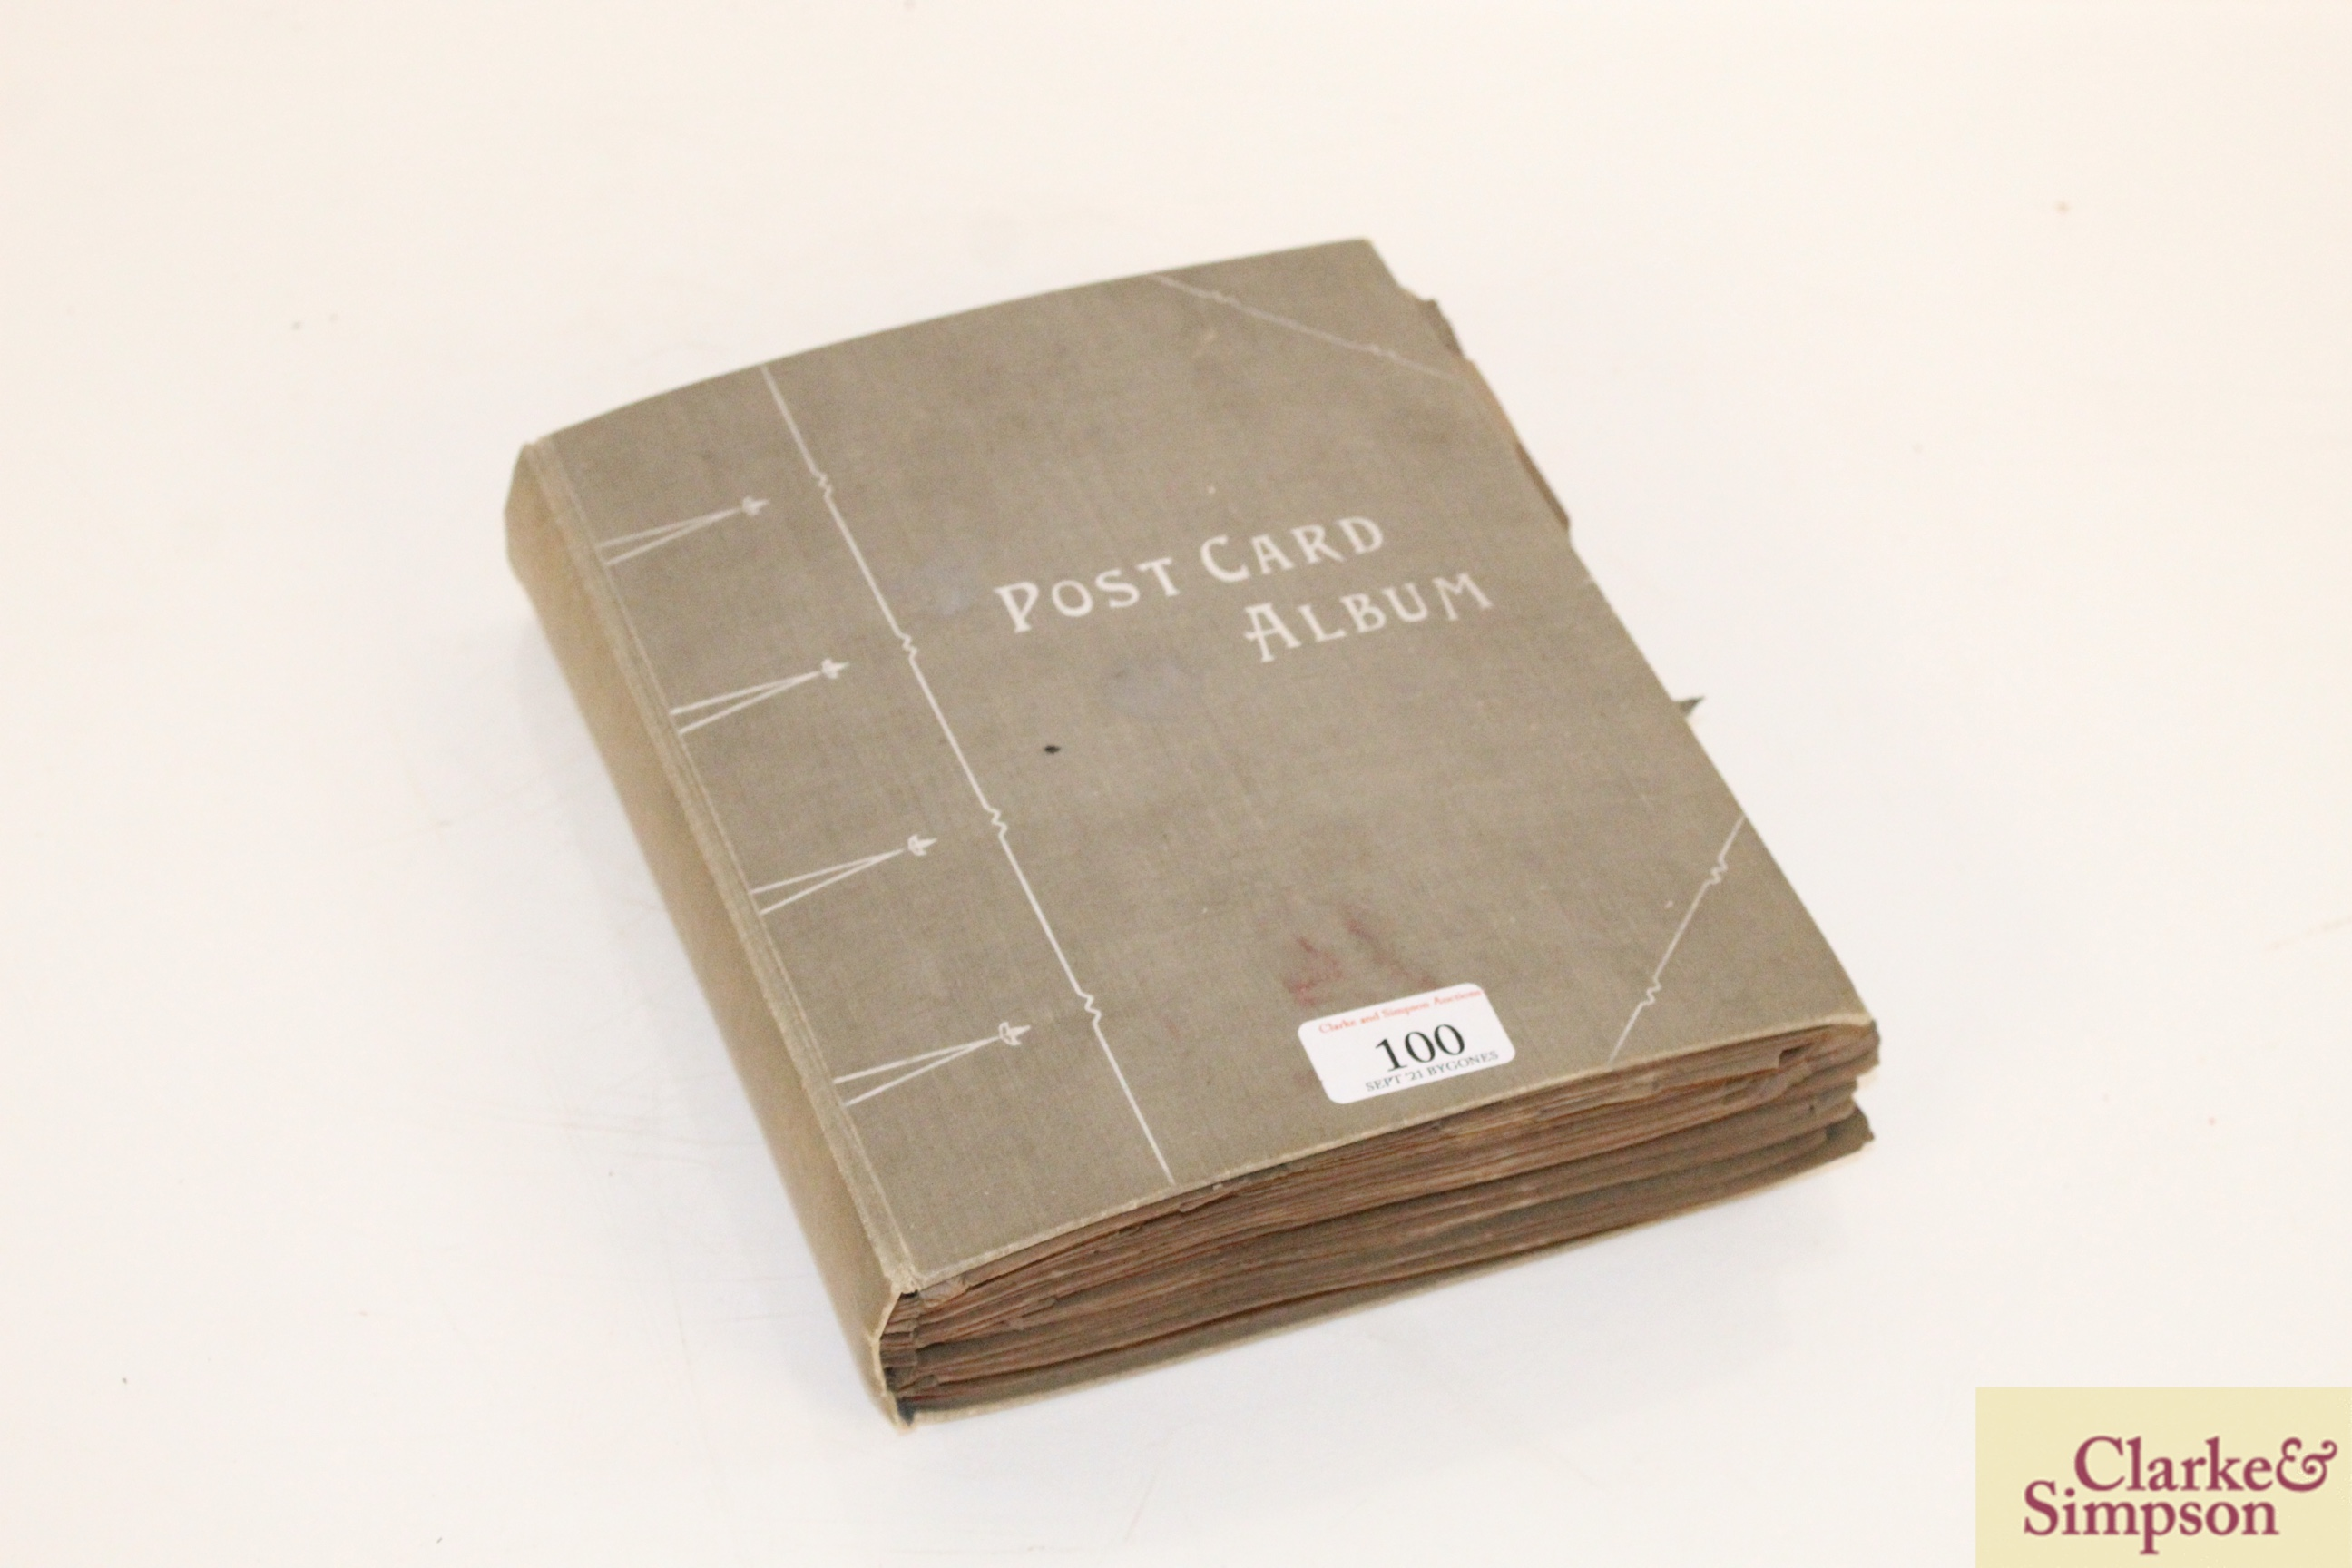 An early 20th Century post-card album containing a